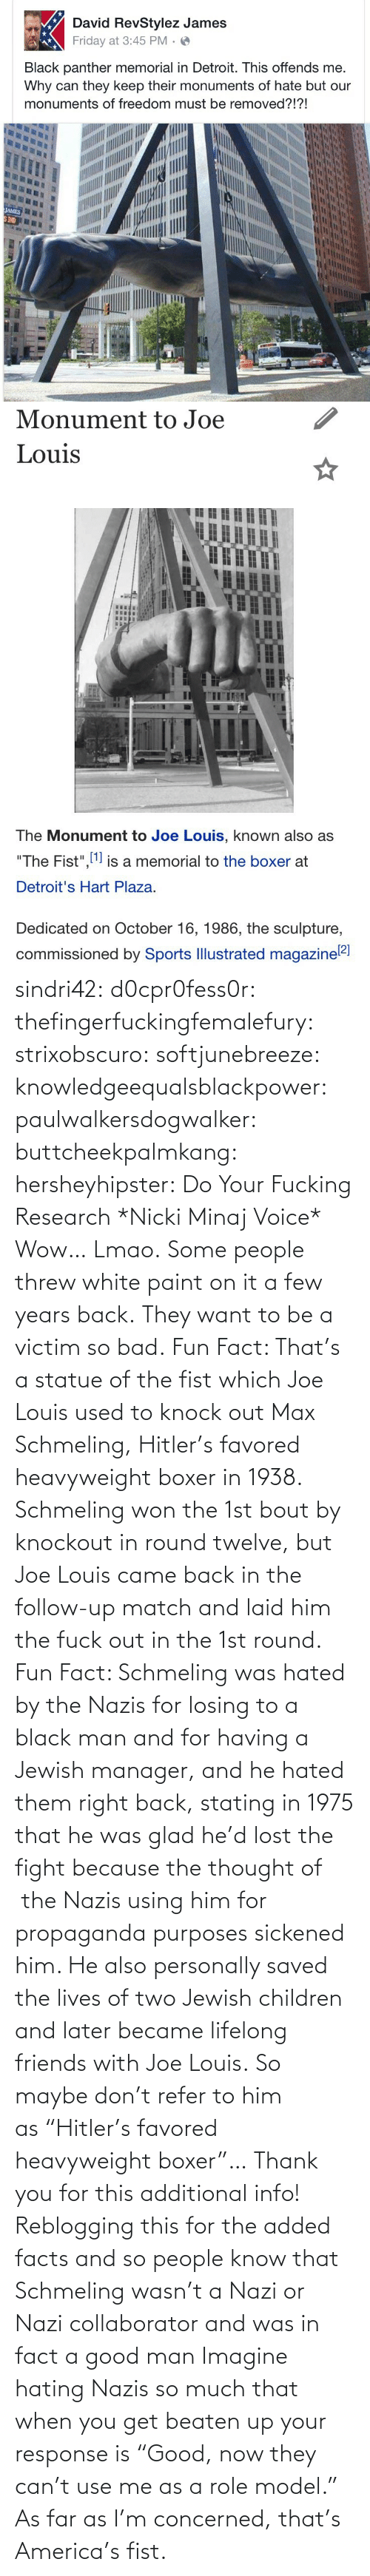 "Wow: sindri42:  d0cpr0fess0r:  thefingerfuckingfemalefury:  strixobscuro:  softjunebreeze:  knowledgeequalsblackpower:  paulwalkersdogwalker:   buttcheekpalmkang:   hersheyhipster:  Do Your Fucking Research *Nicki Minaj Voice*    Wow… Lmao.   Some people threw white paint on it a few years back.   They want to be a victim so bad.  Fun Fact: That's a statue of the fist which Joe Louis used to knock out Max Schmeling, Hitler's favored heavyweight boxer in 1938. Schmeling won the 1st bout by knockout in round twelve, but Joe Louis came back in the follow-up match and laid him the fuck out in the 1st round.  Fun Fact: Schmeling was hated by the Nazis for losing to a black man and for having a Jewish manager, and he hated them right back, stating in 1975 that he was glad he'd lost the fight because the thought of  the Nazis using him for propaganda purposes sickened him. He also personally saved the lives of two Jewish children and later became lifelong friends with Joe Louis. So maybe don't refer to him as ""Hitler's favored heavyweight boxer""…  Thank you for this additional info! Reblogging this for the added facts and so people know that Schmeling wasn't a Nazi or Nazi collaborator and was in fact a good man   Imagine hating Nazis so much that when you get beaten up your response is ""Good, now they can't use me as a role model.""  As far as I'm concerned, that's America's fist."